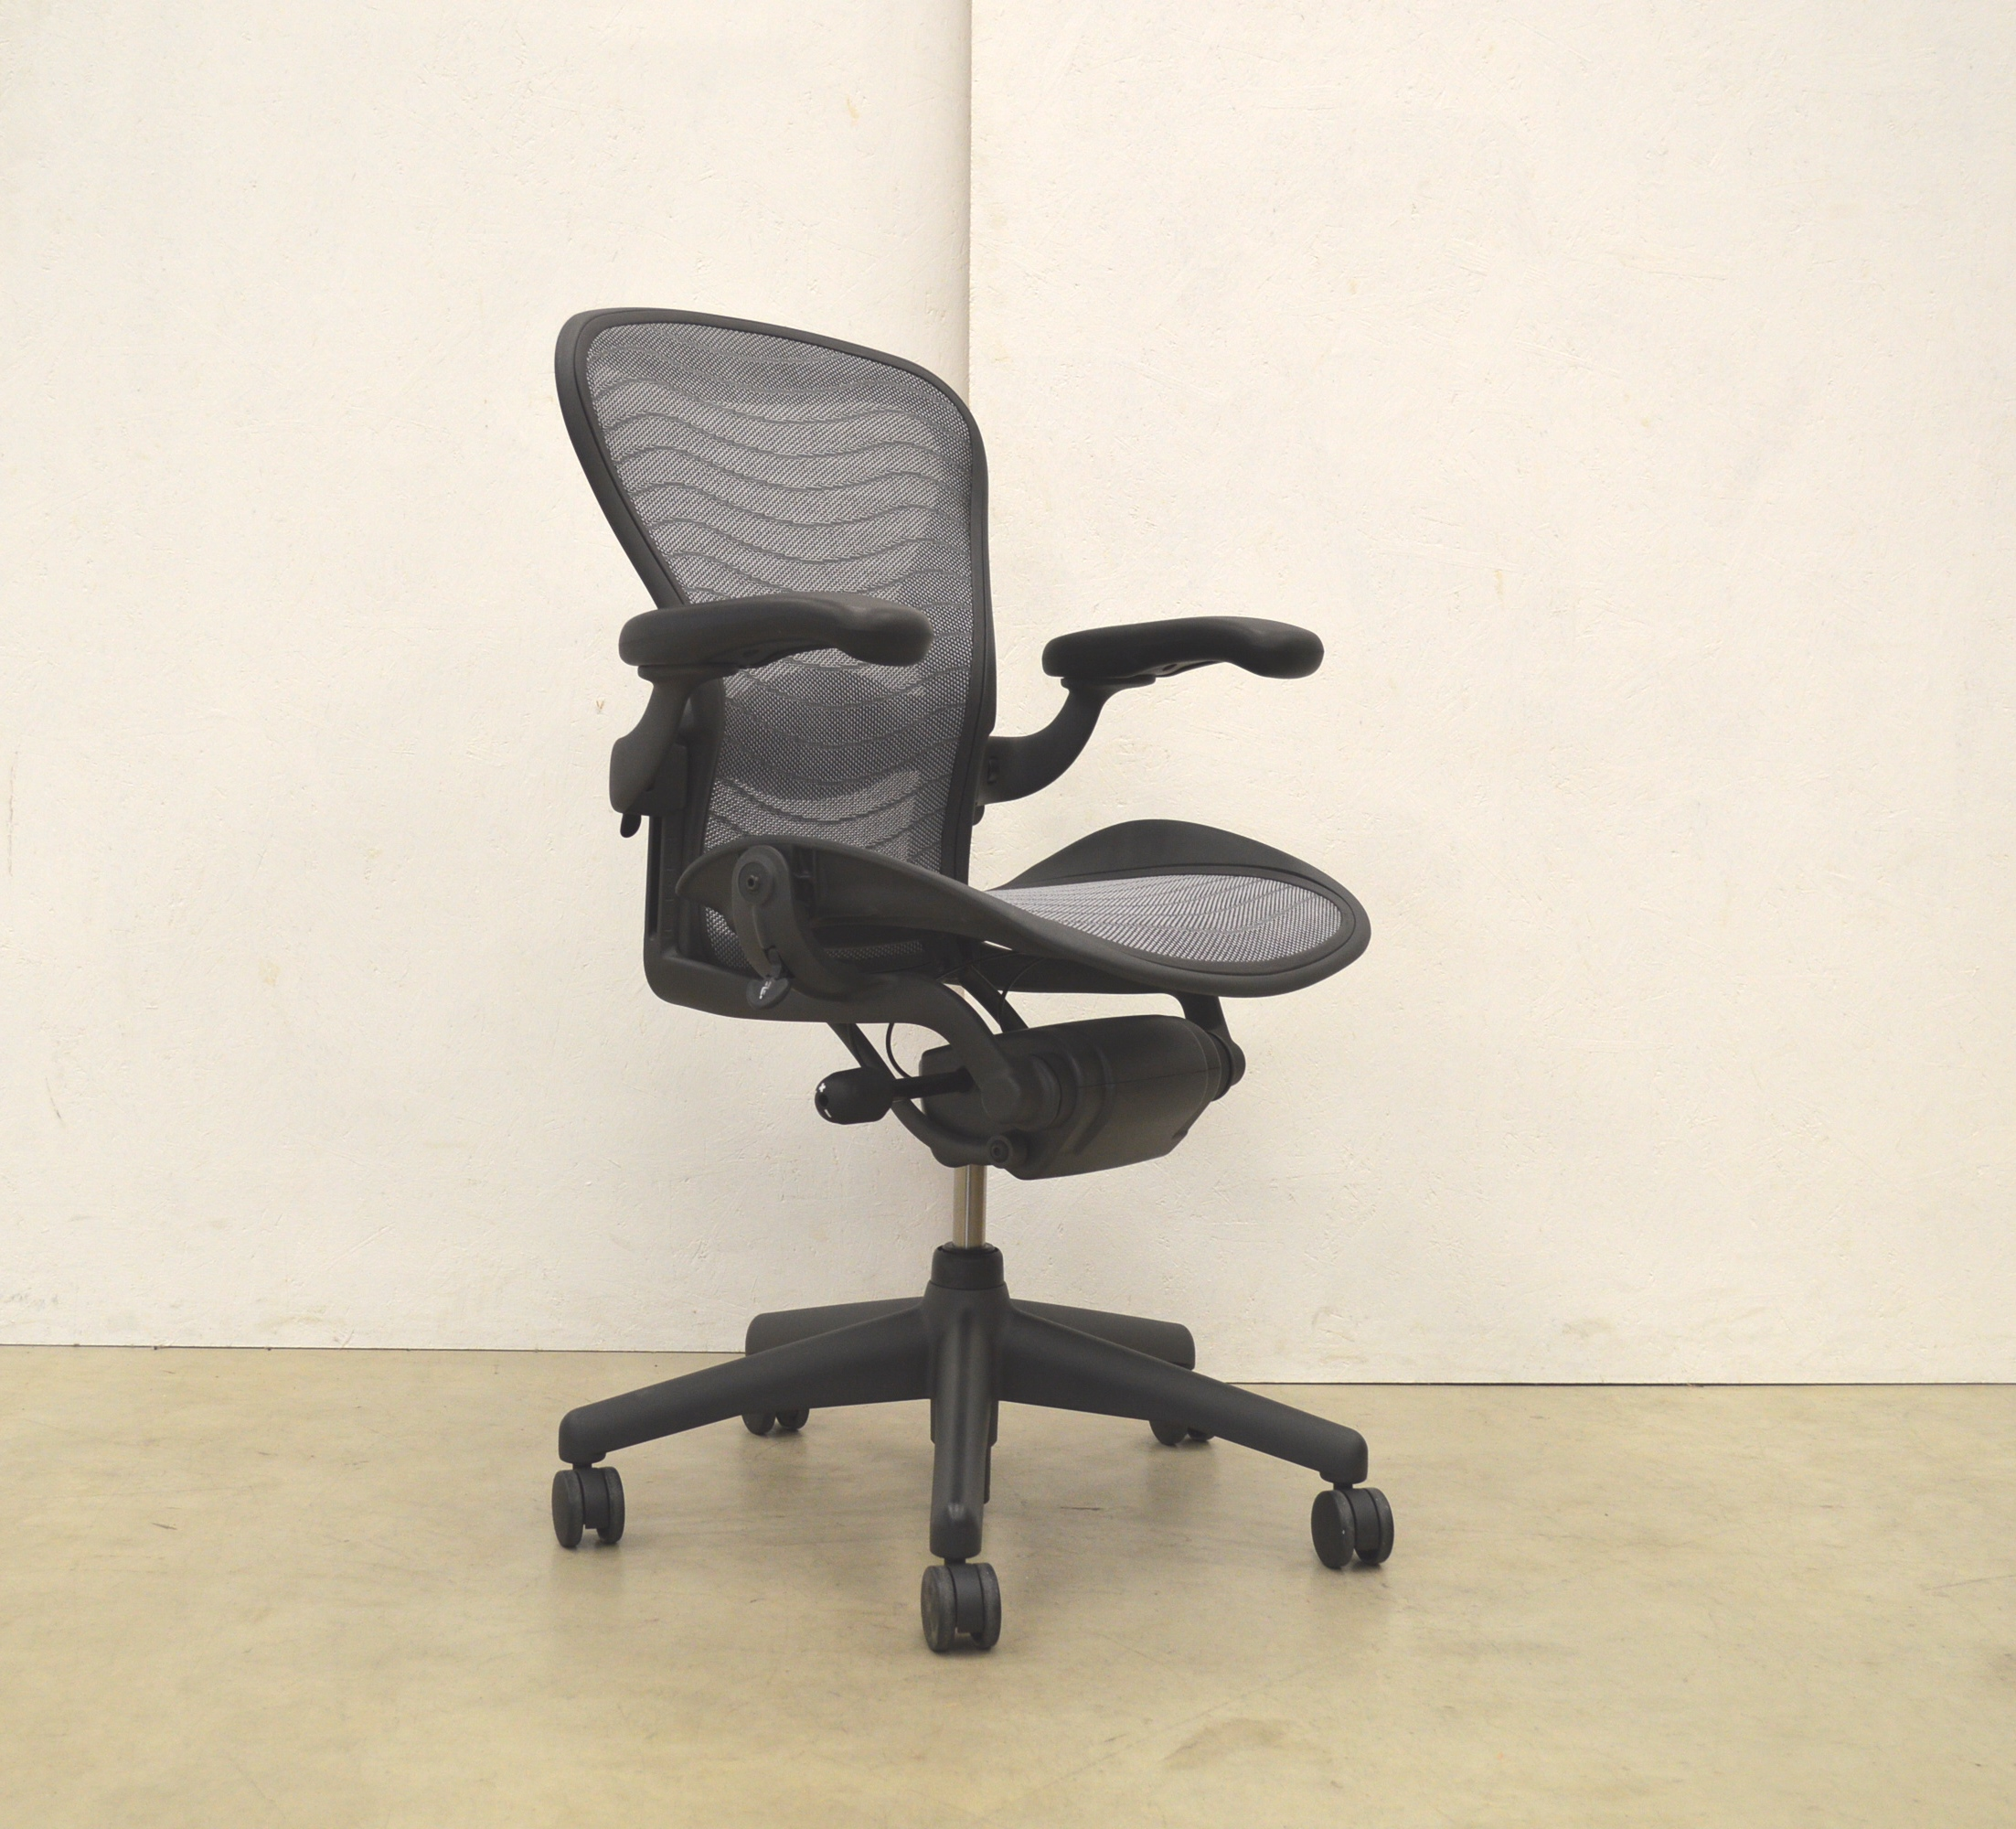 80x Herman Miller Aeron Chair Size B Zinc Graphite 2017 Model